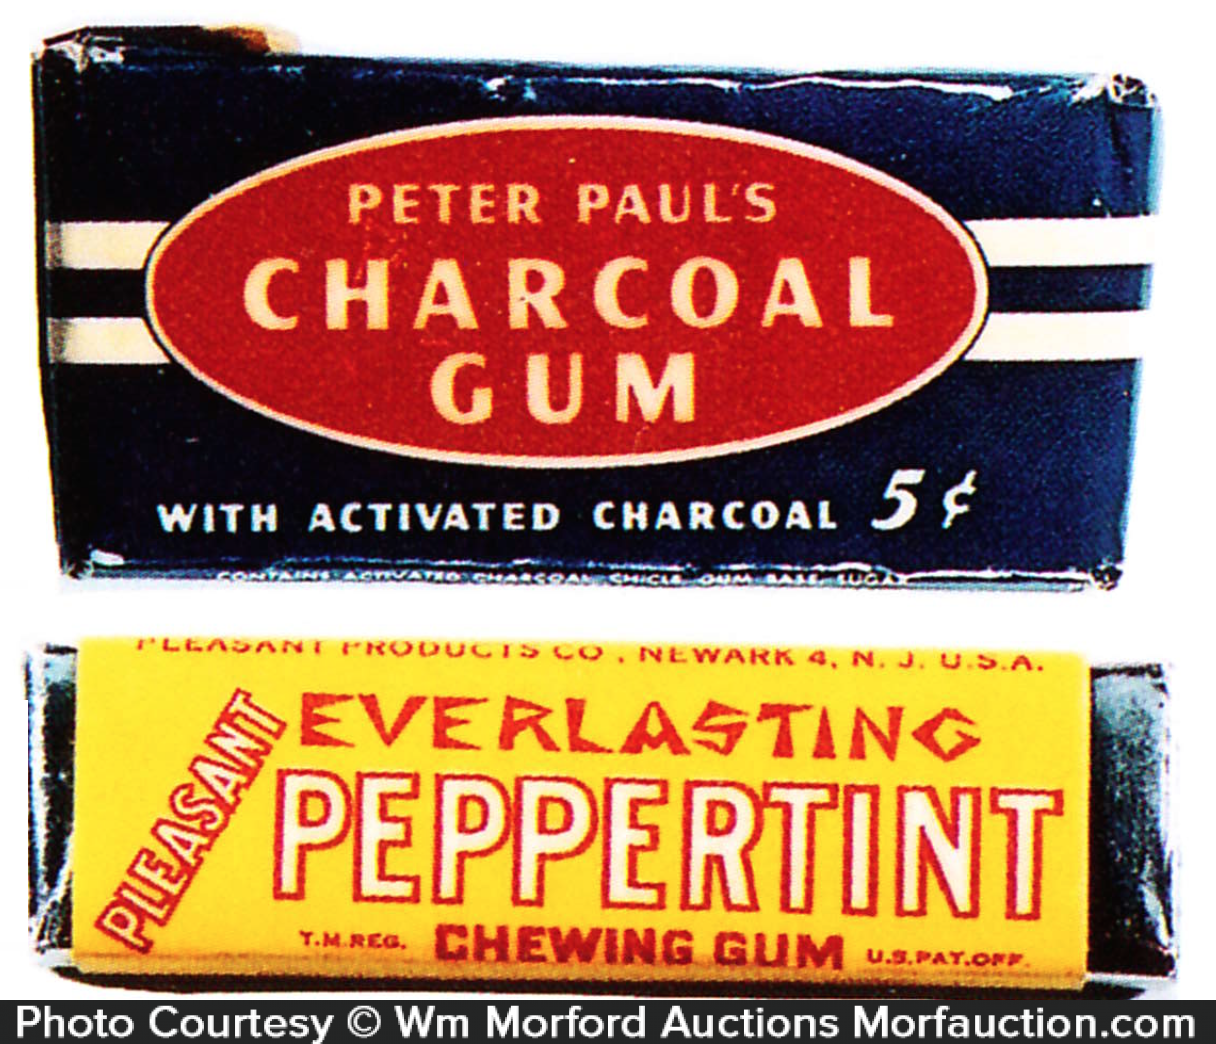 Vintage Gum Packs